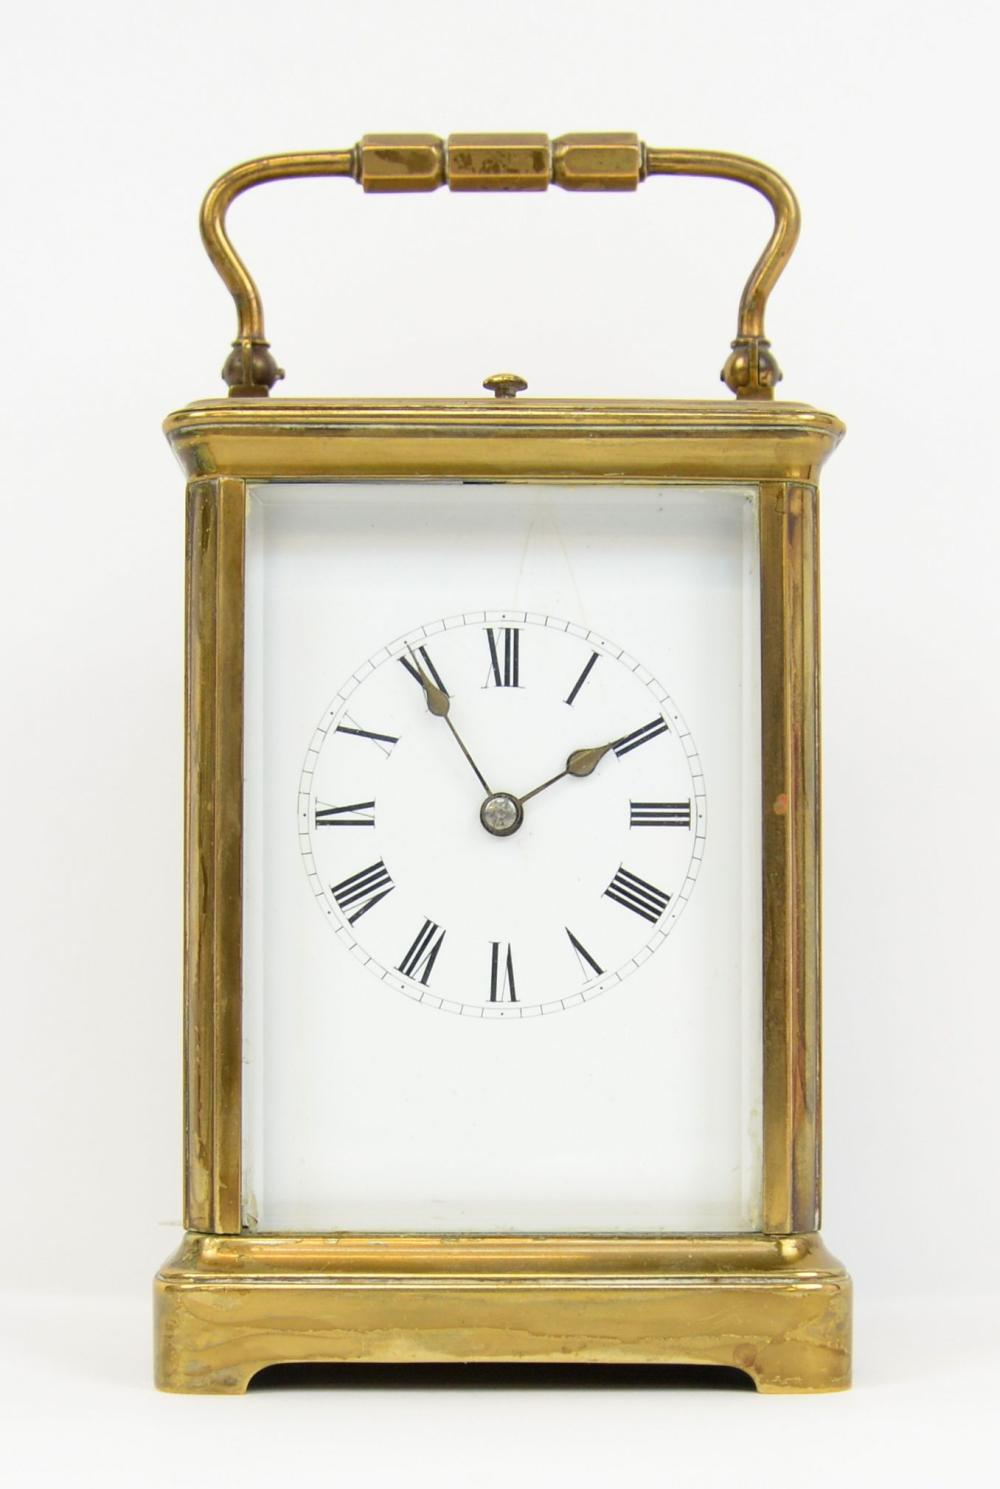 Brass and glass repeating carriage clock, enamel d